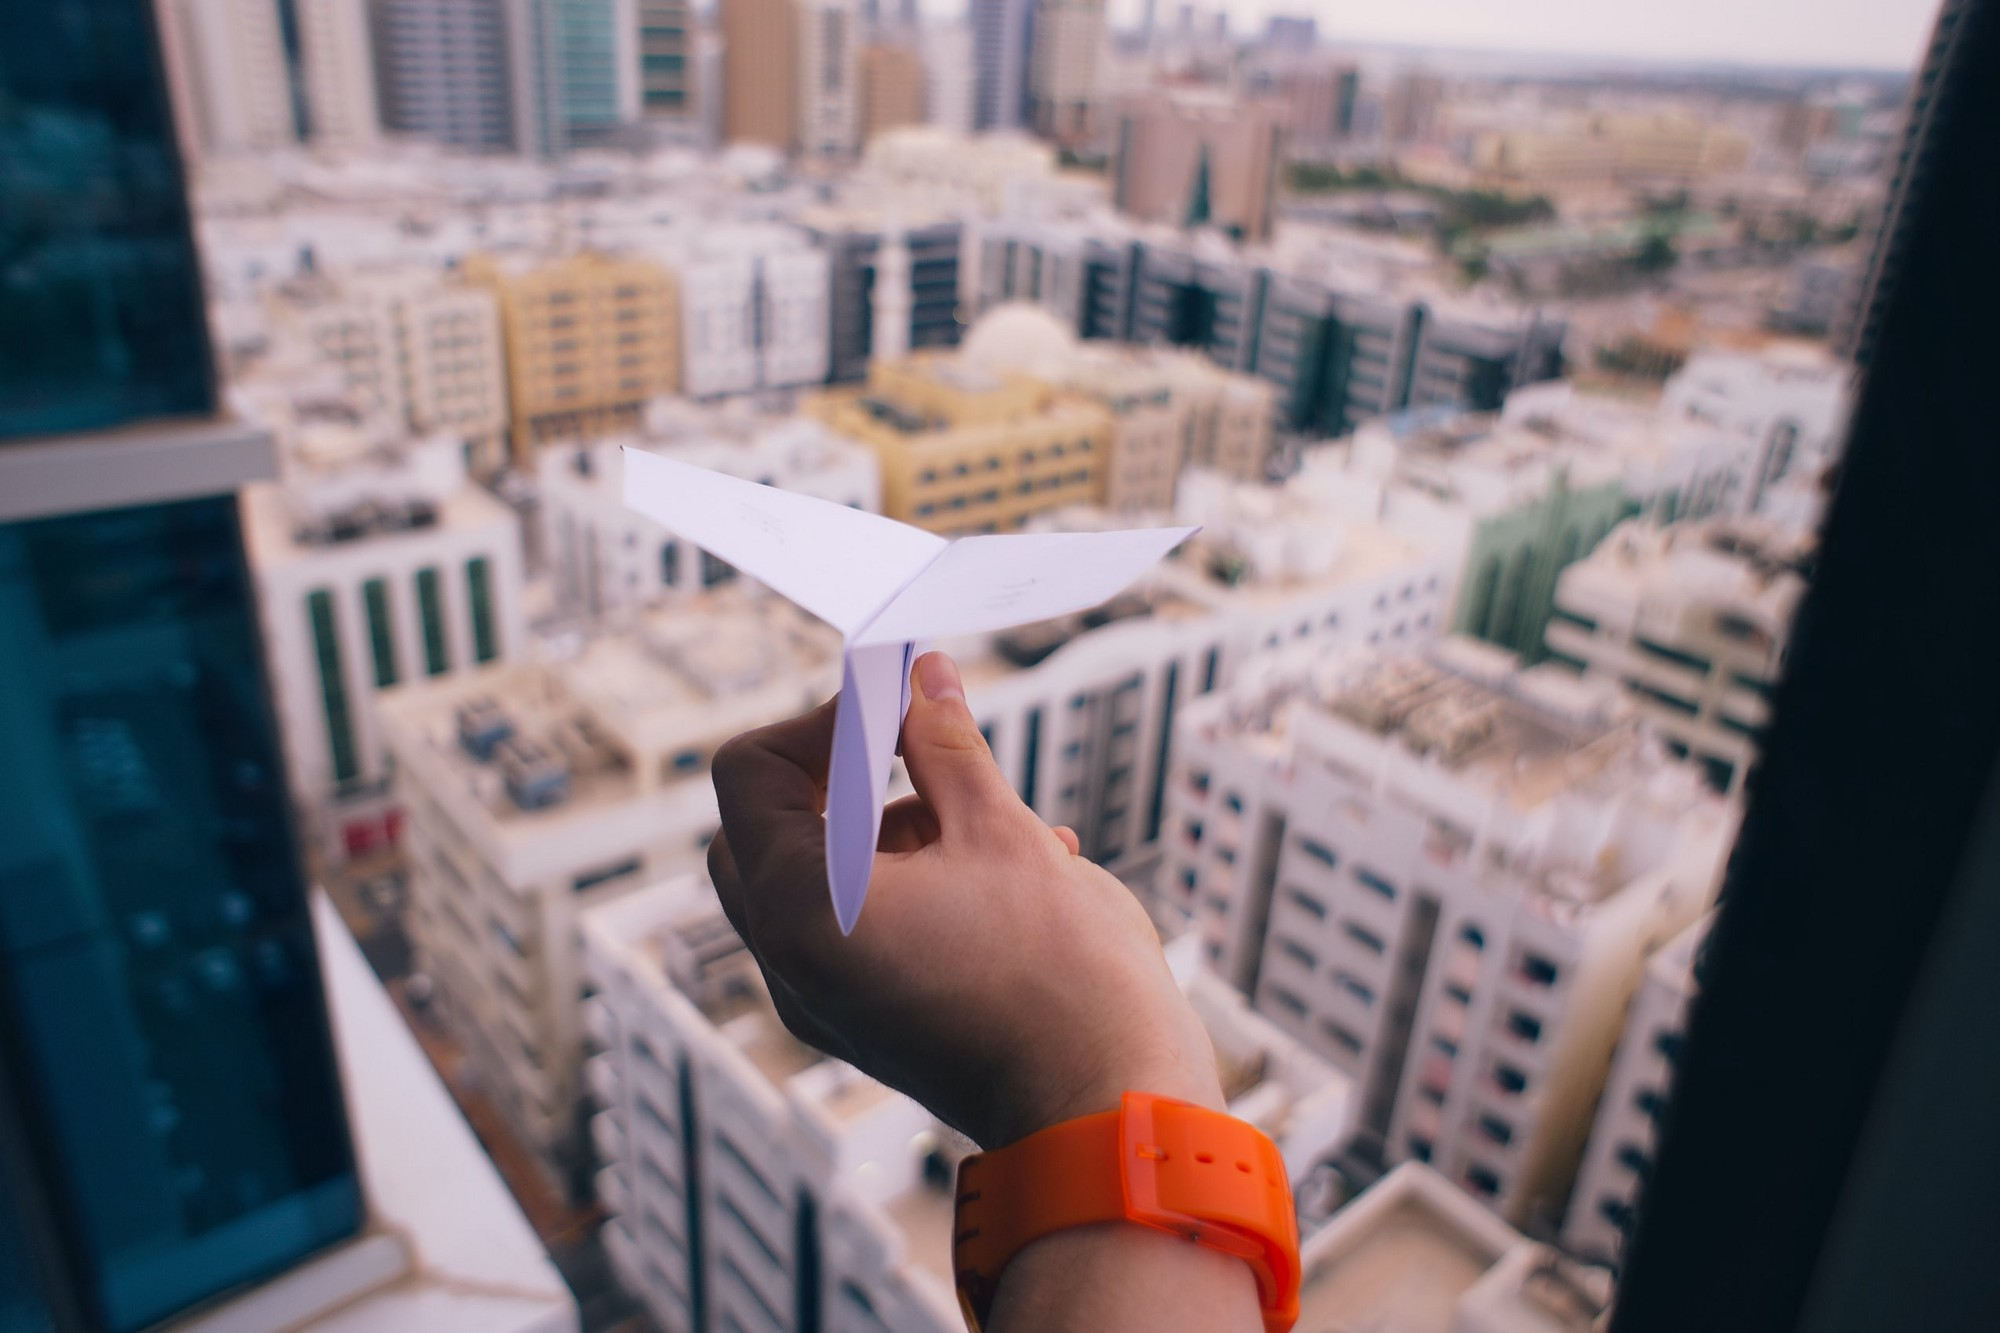 Hand holding paper airplane above city office buildings.